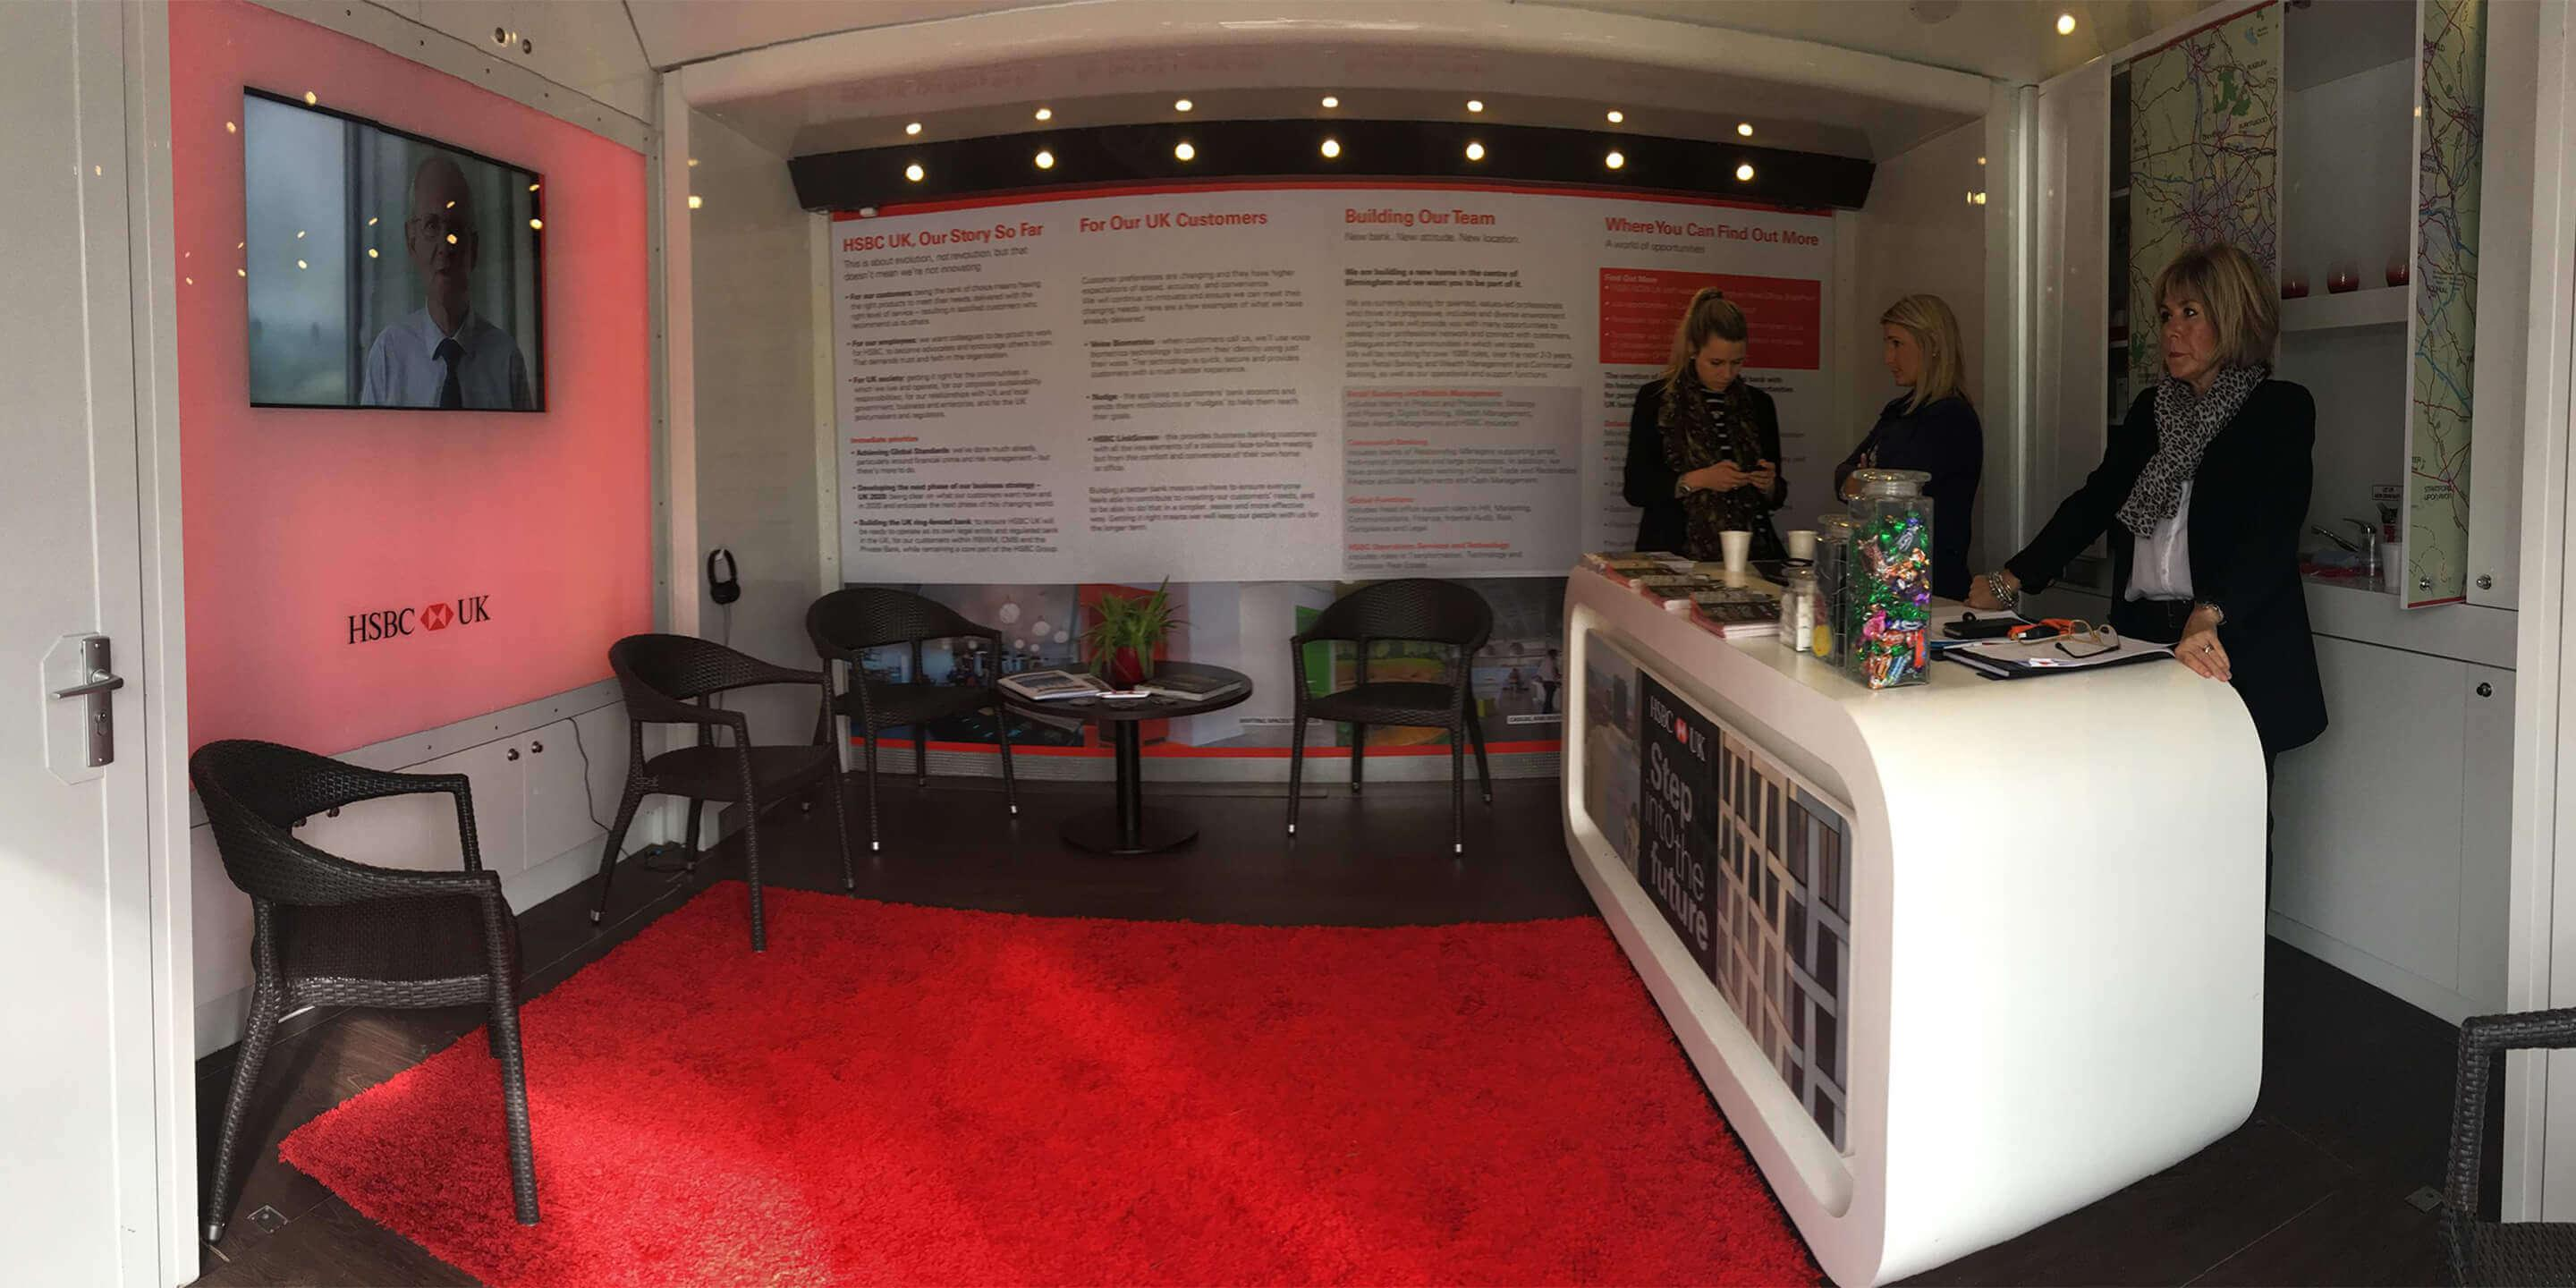 Exhibition Trailers: Relay Promotional Vehicle for HSBC Awareness Tour Interior